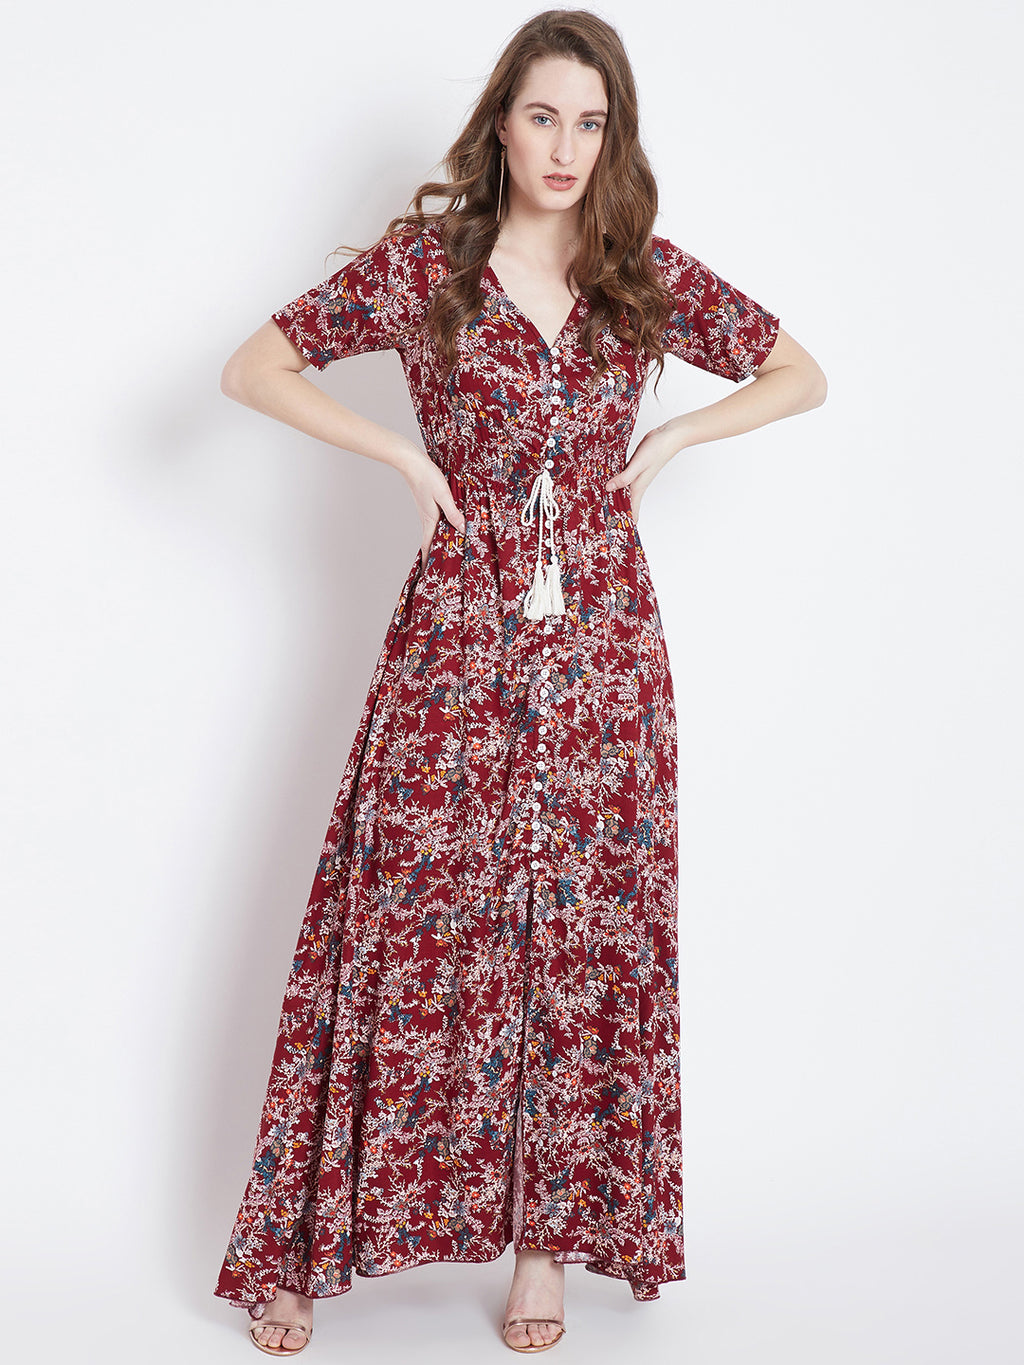 Berrylush Women Maroon & White Printed Maxi Dress